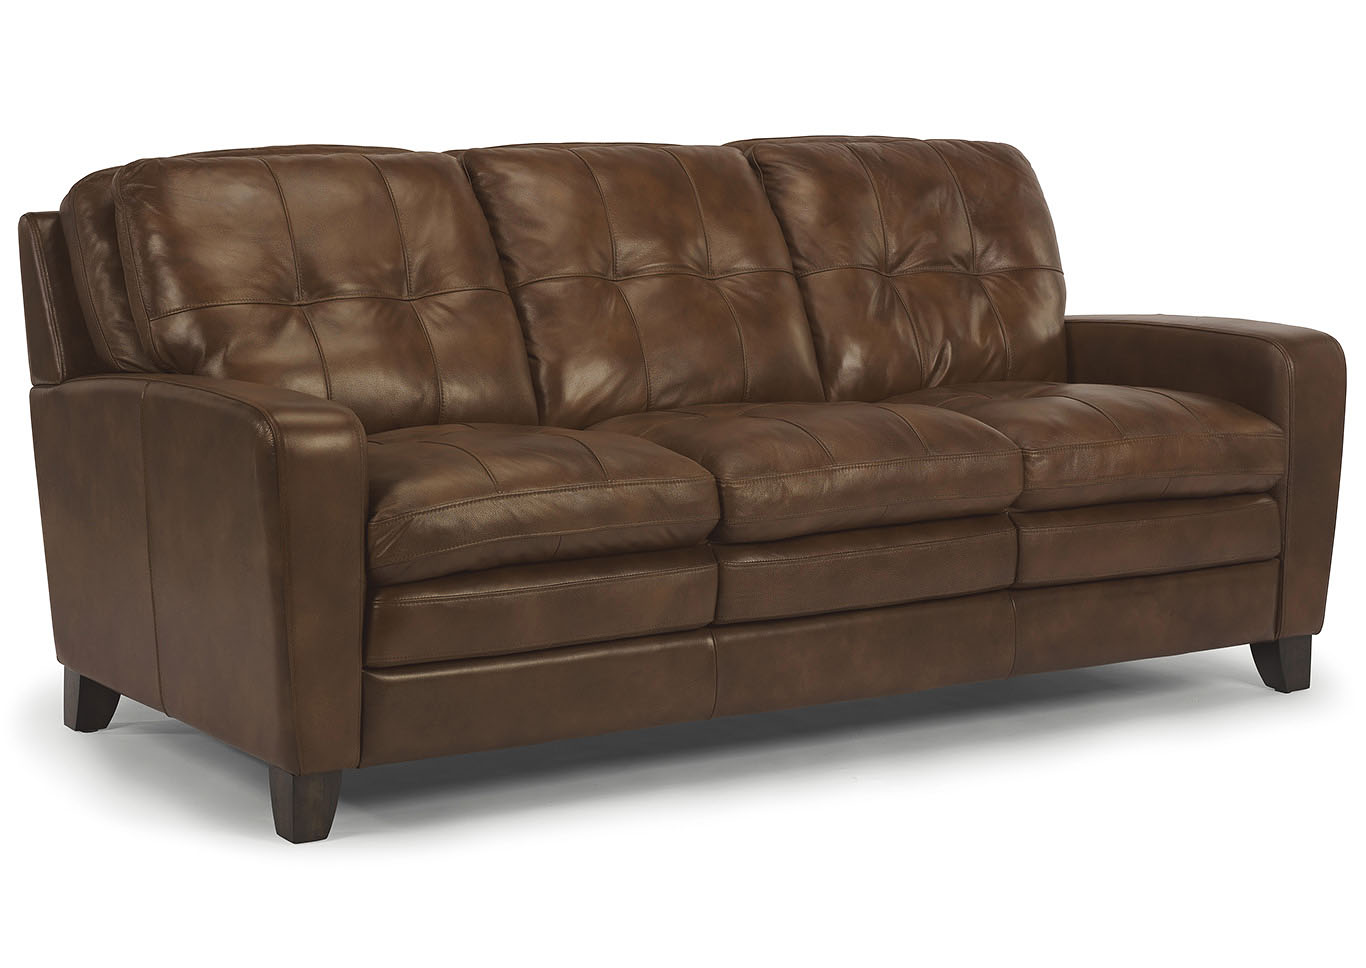 Amazing Country House Furniture South Street Leather Sofa Dailytribune Chair Design For Home Dailytribuneorg